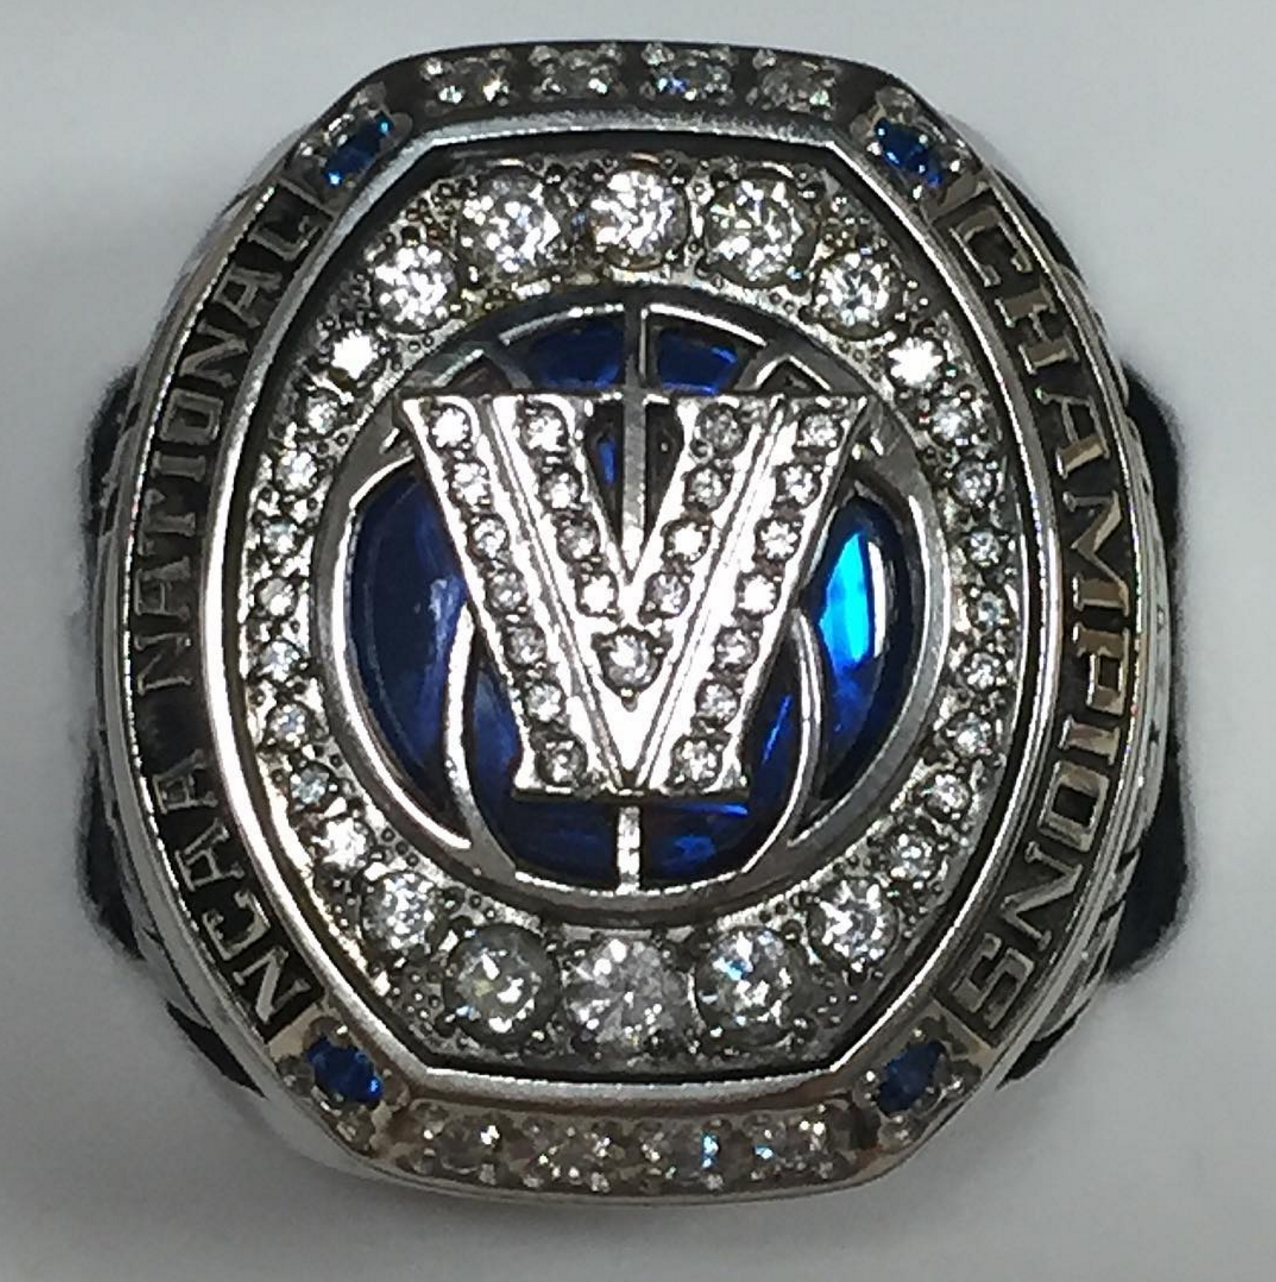 htm p ring baseball player conference oral roberts ncaa rings quantity champions s